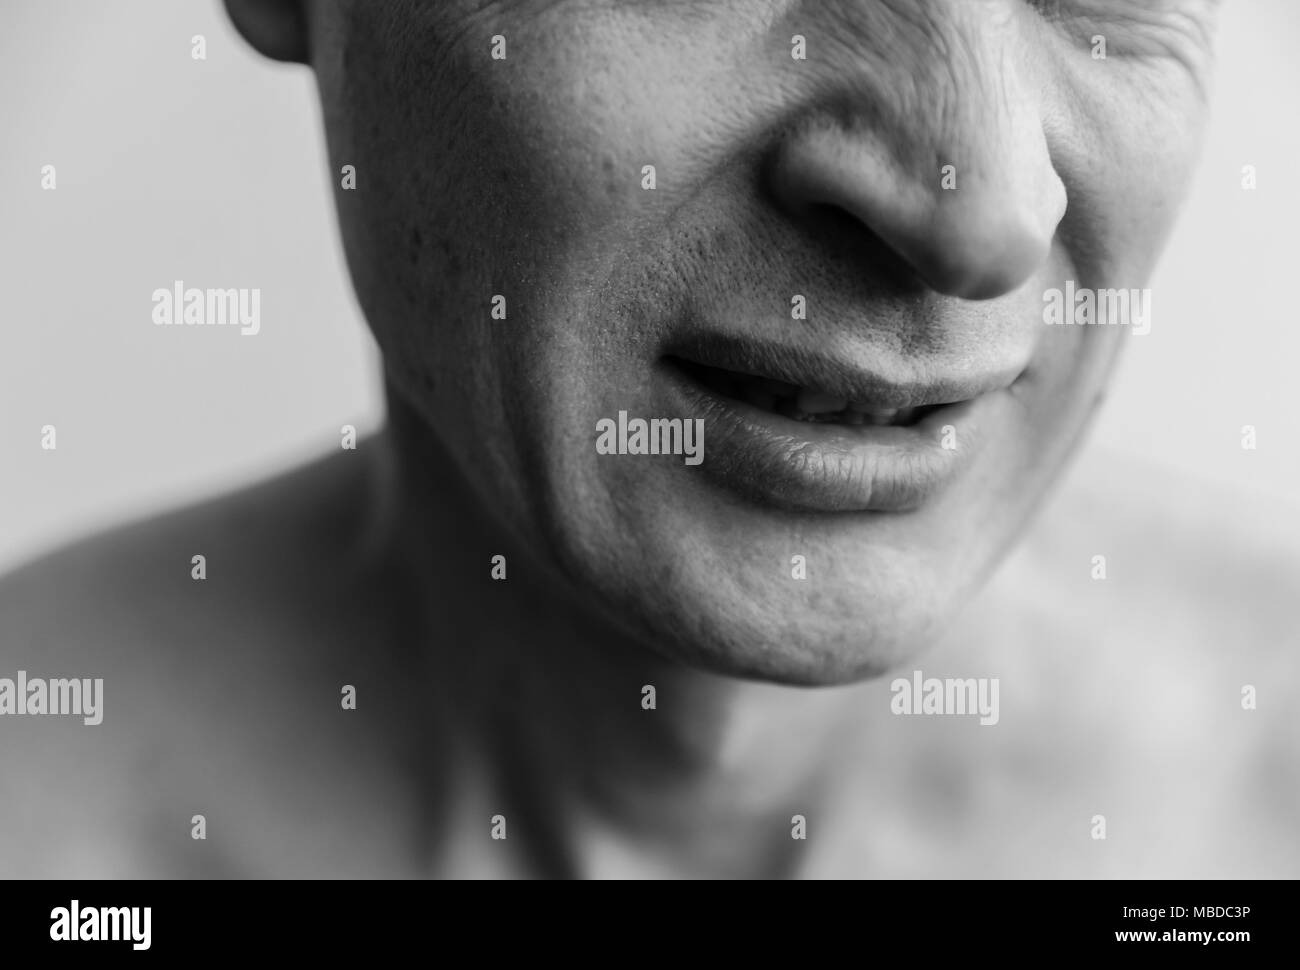 Mimicry showing  not like. The lower part of the face of a man closeup. Black and white images - Stock Image